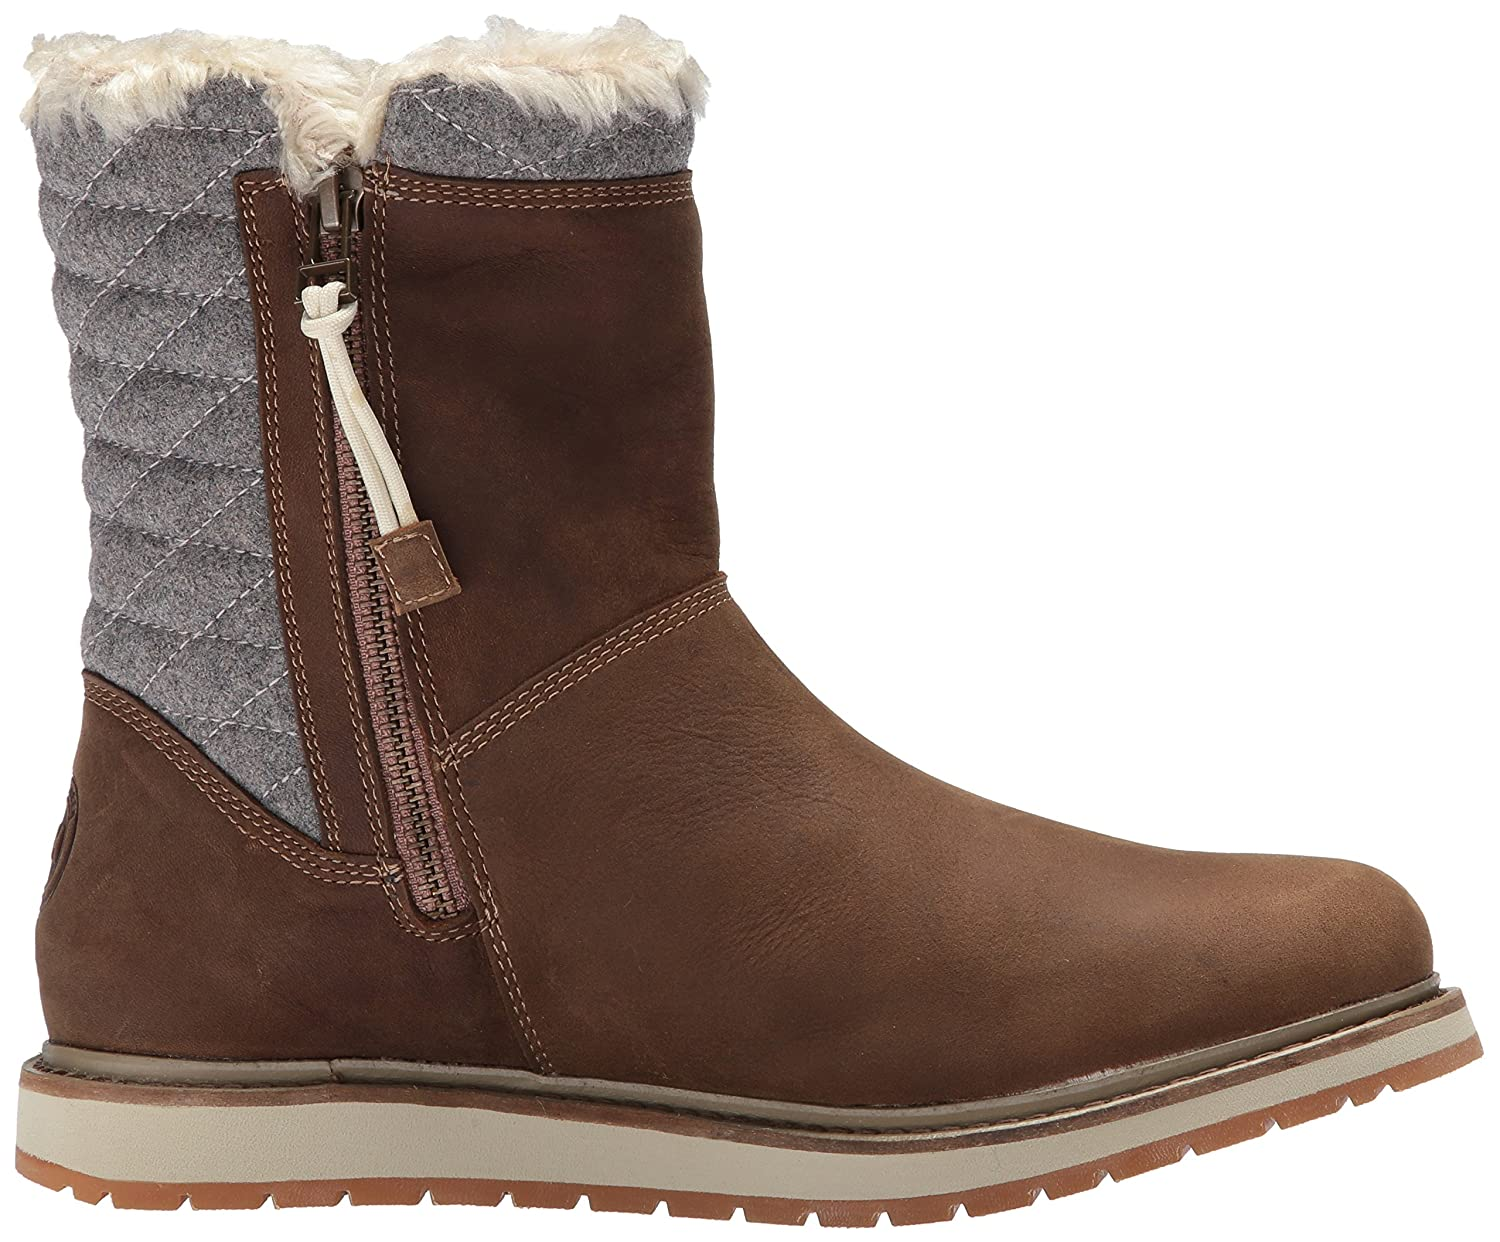 Helly Hansen Women's Seraphina Winter Boot B01N5XRNK5 9.5 M US|Oatmeal/Natura/Cement